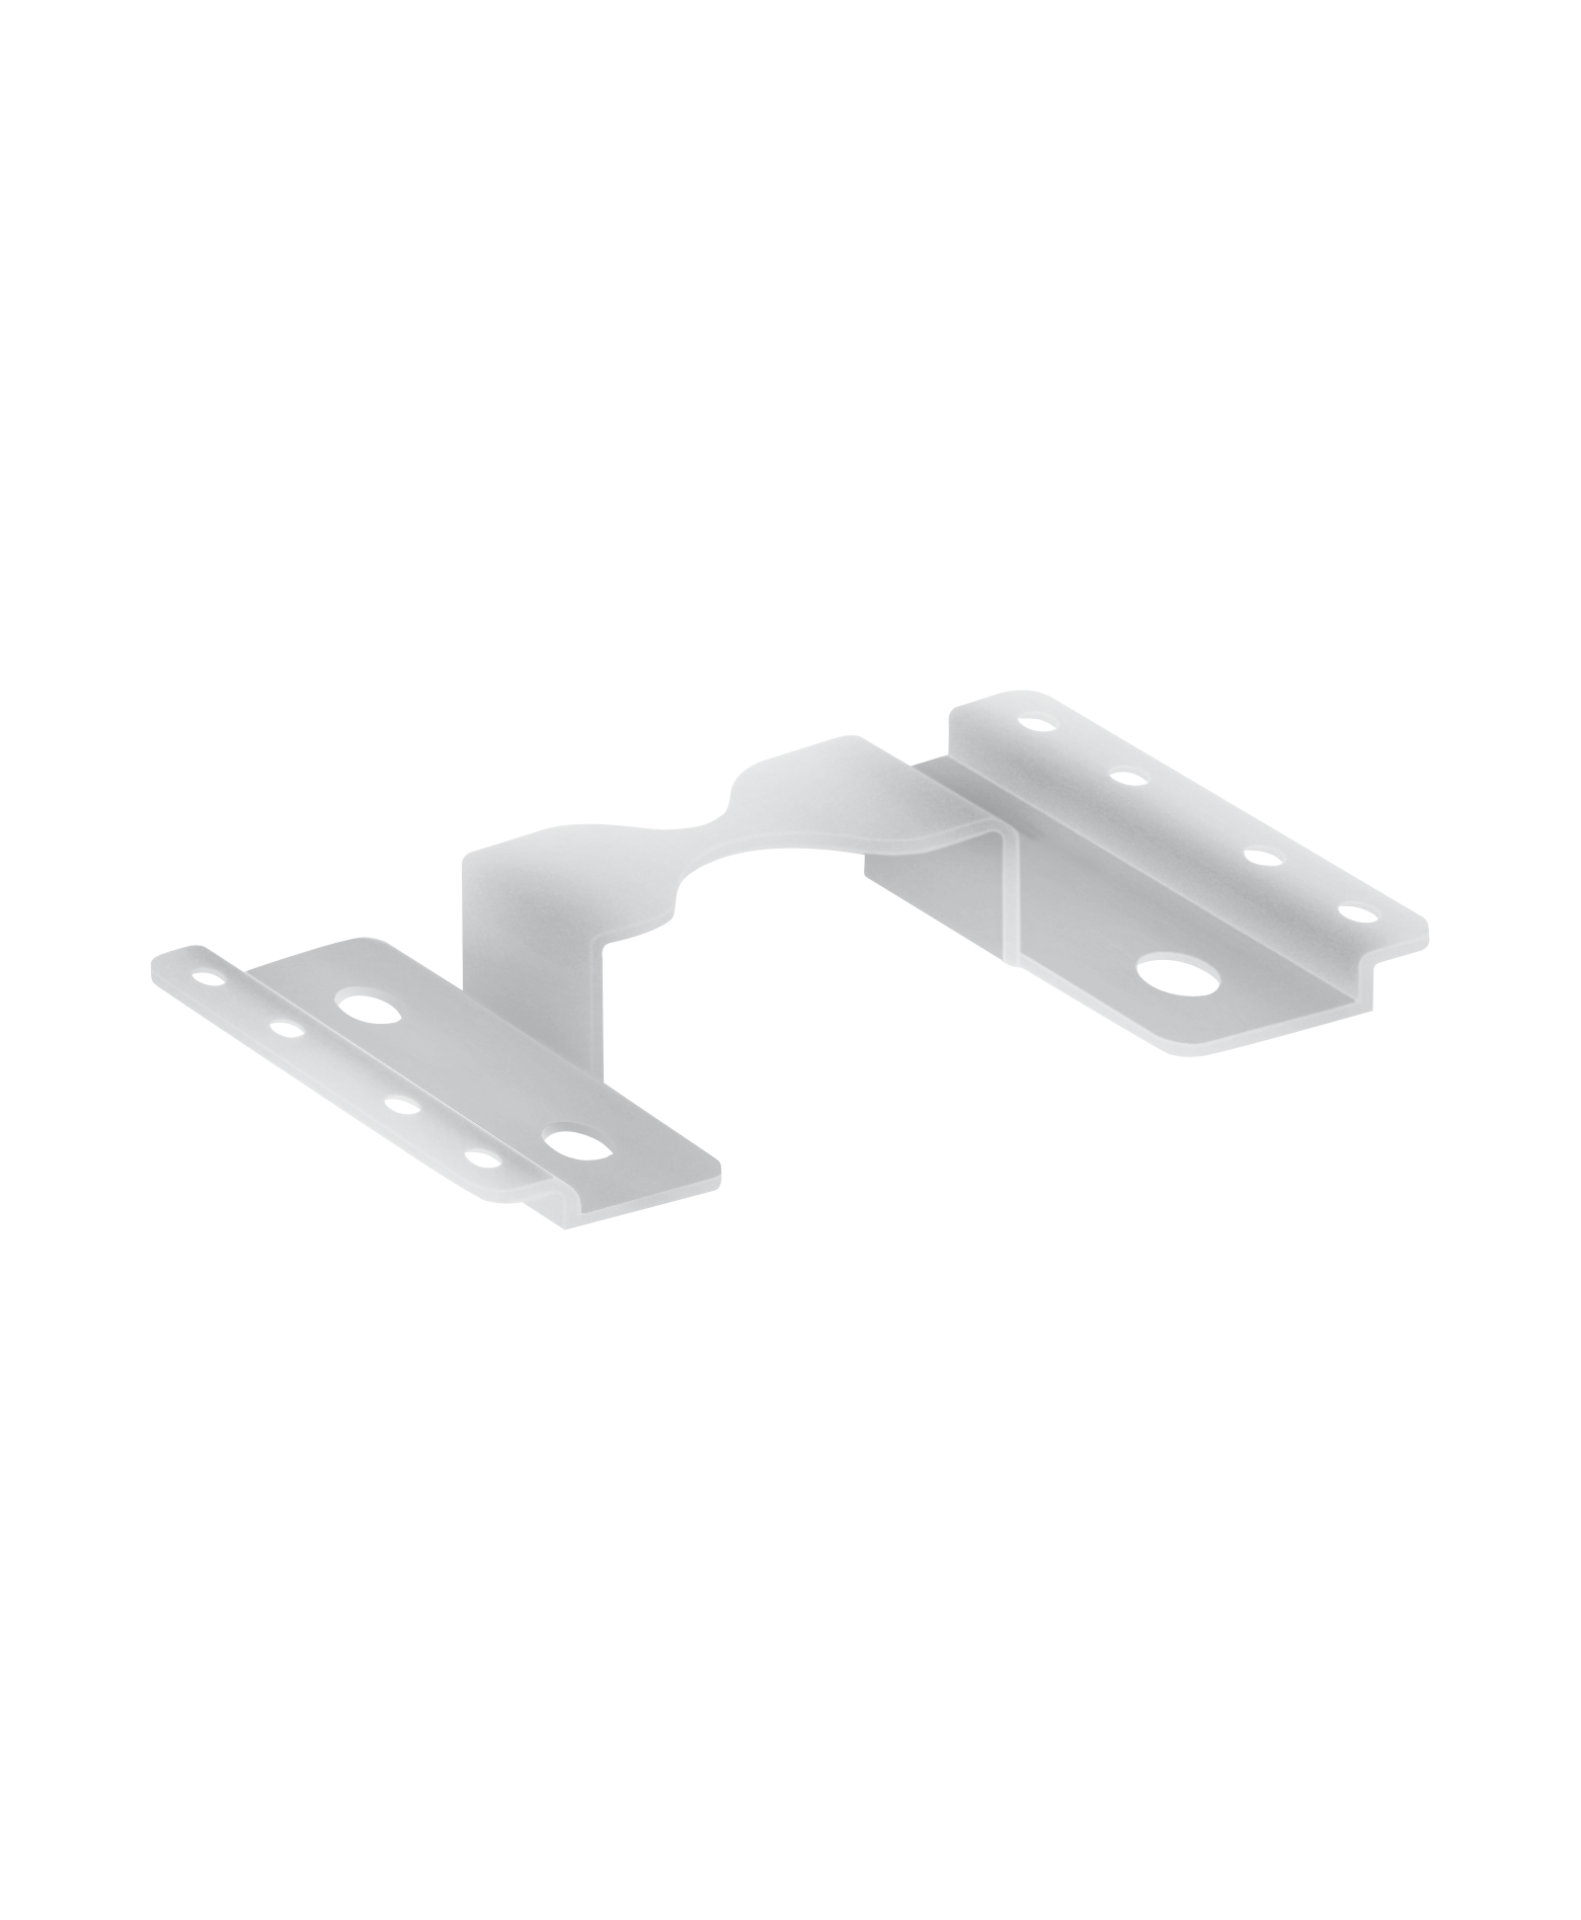 LINEAR IndiviLED LIGHT LINE CONNECTOR